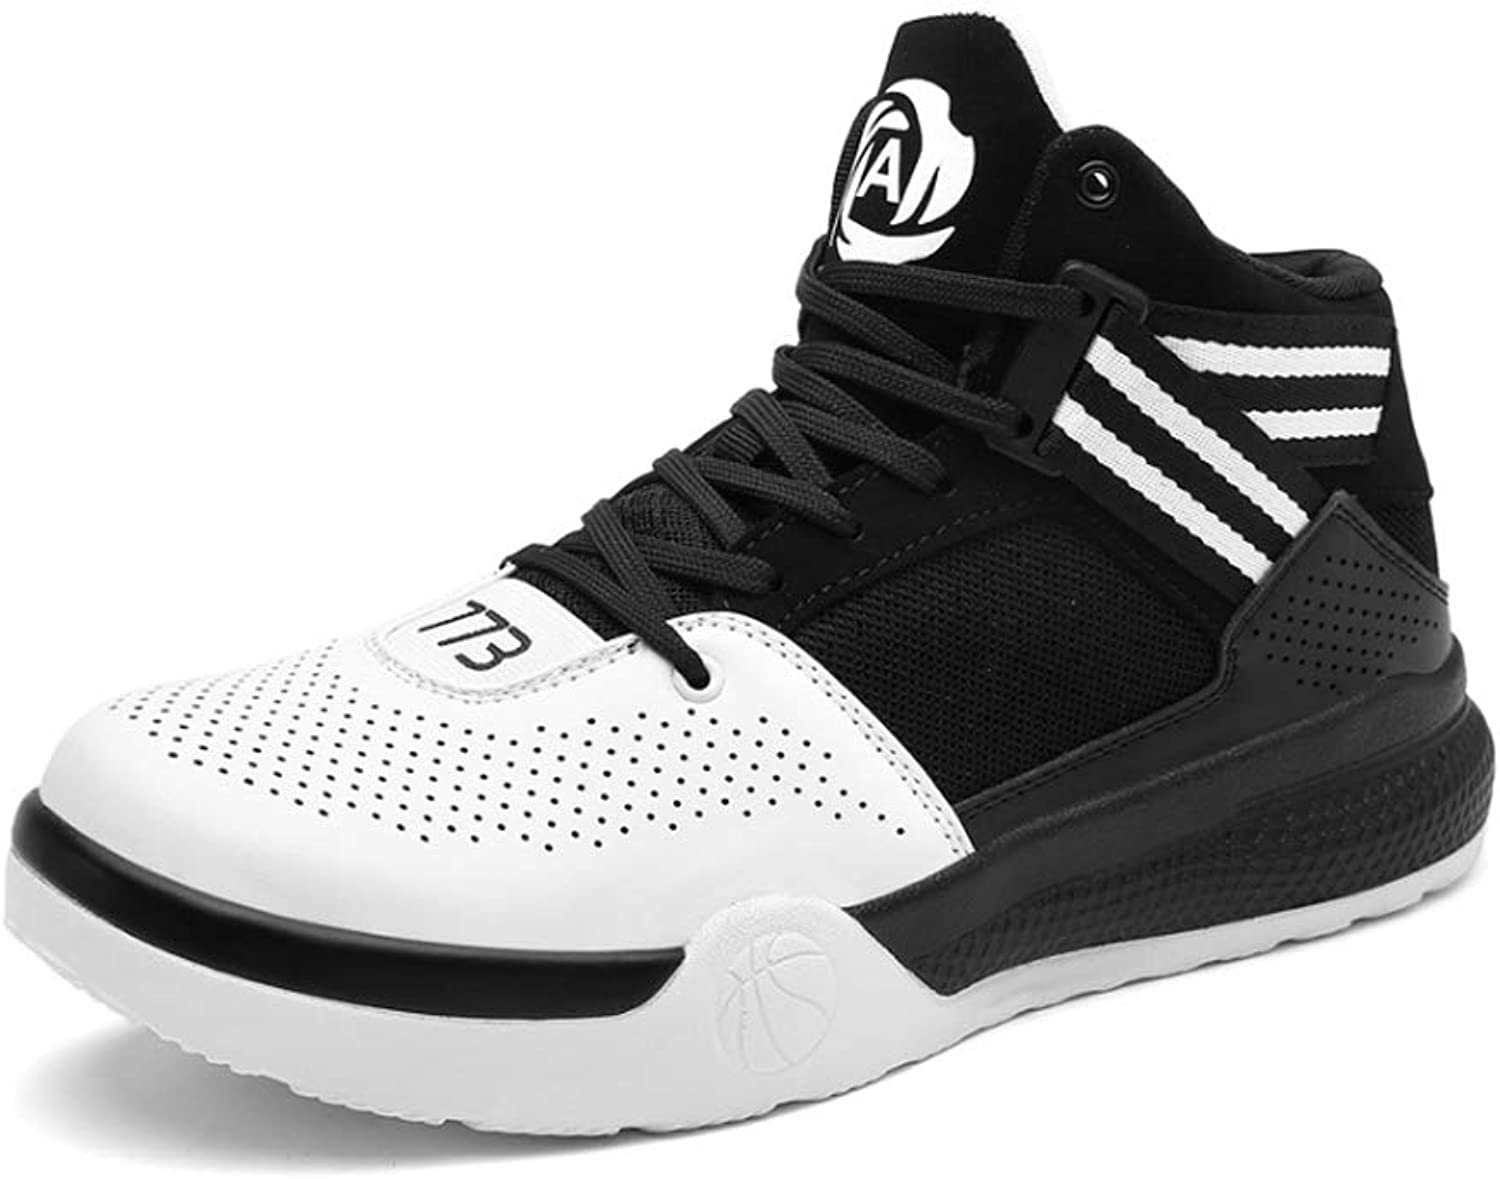 YSZDM Basketball shoes, Wear-Resistant Non-Slip High-Top Sneakers Cushioning Breathable Men'S Outdoor Boots,White,39